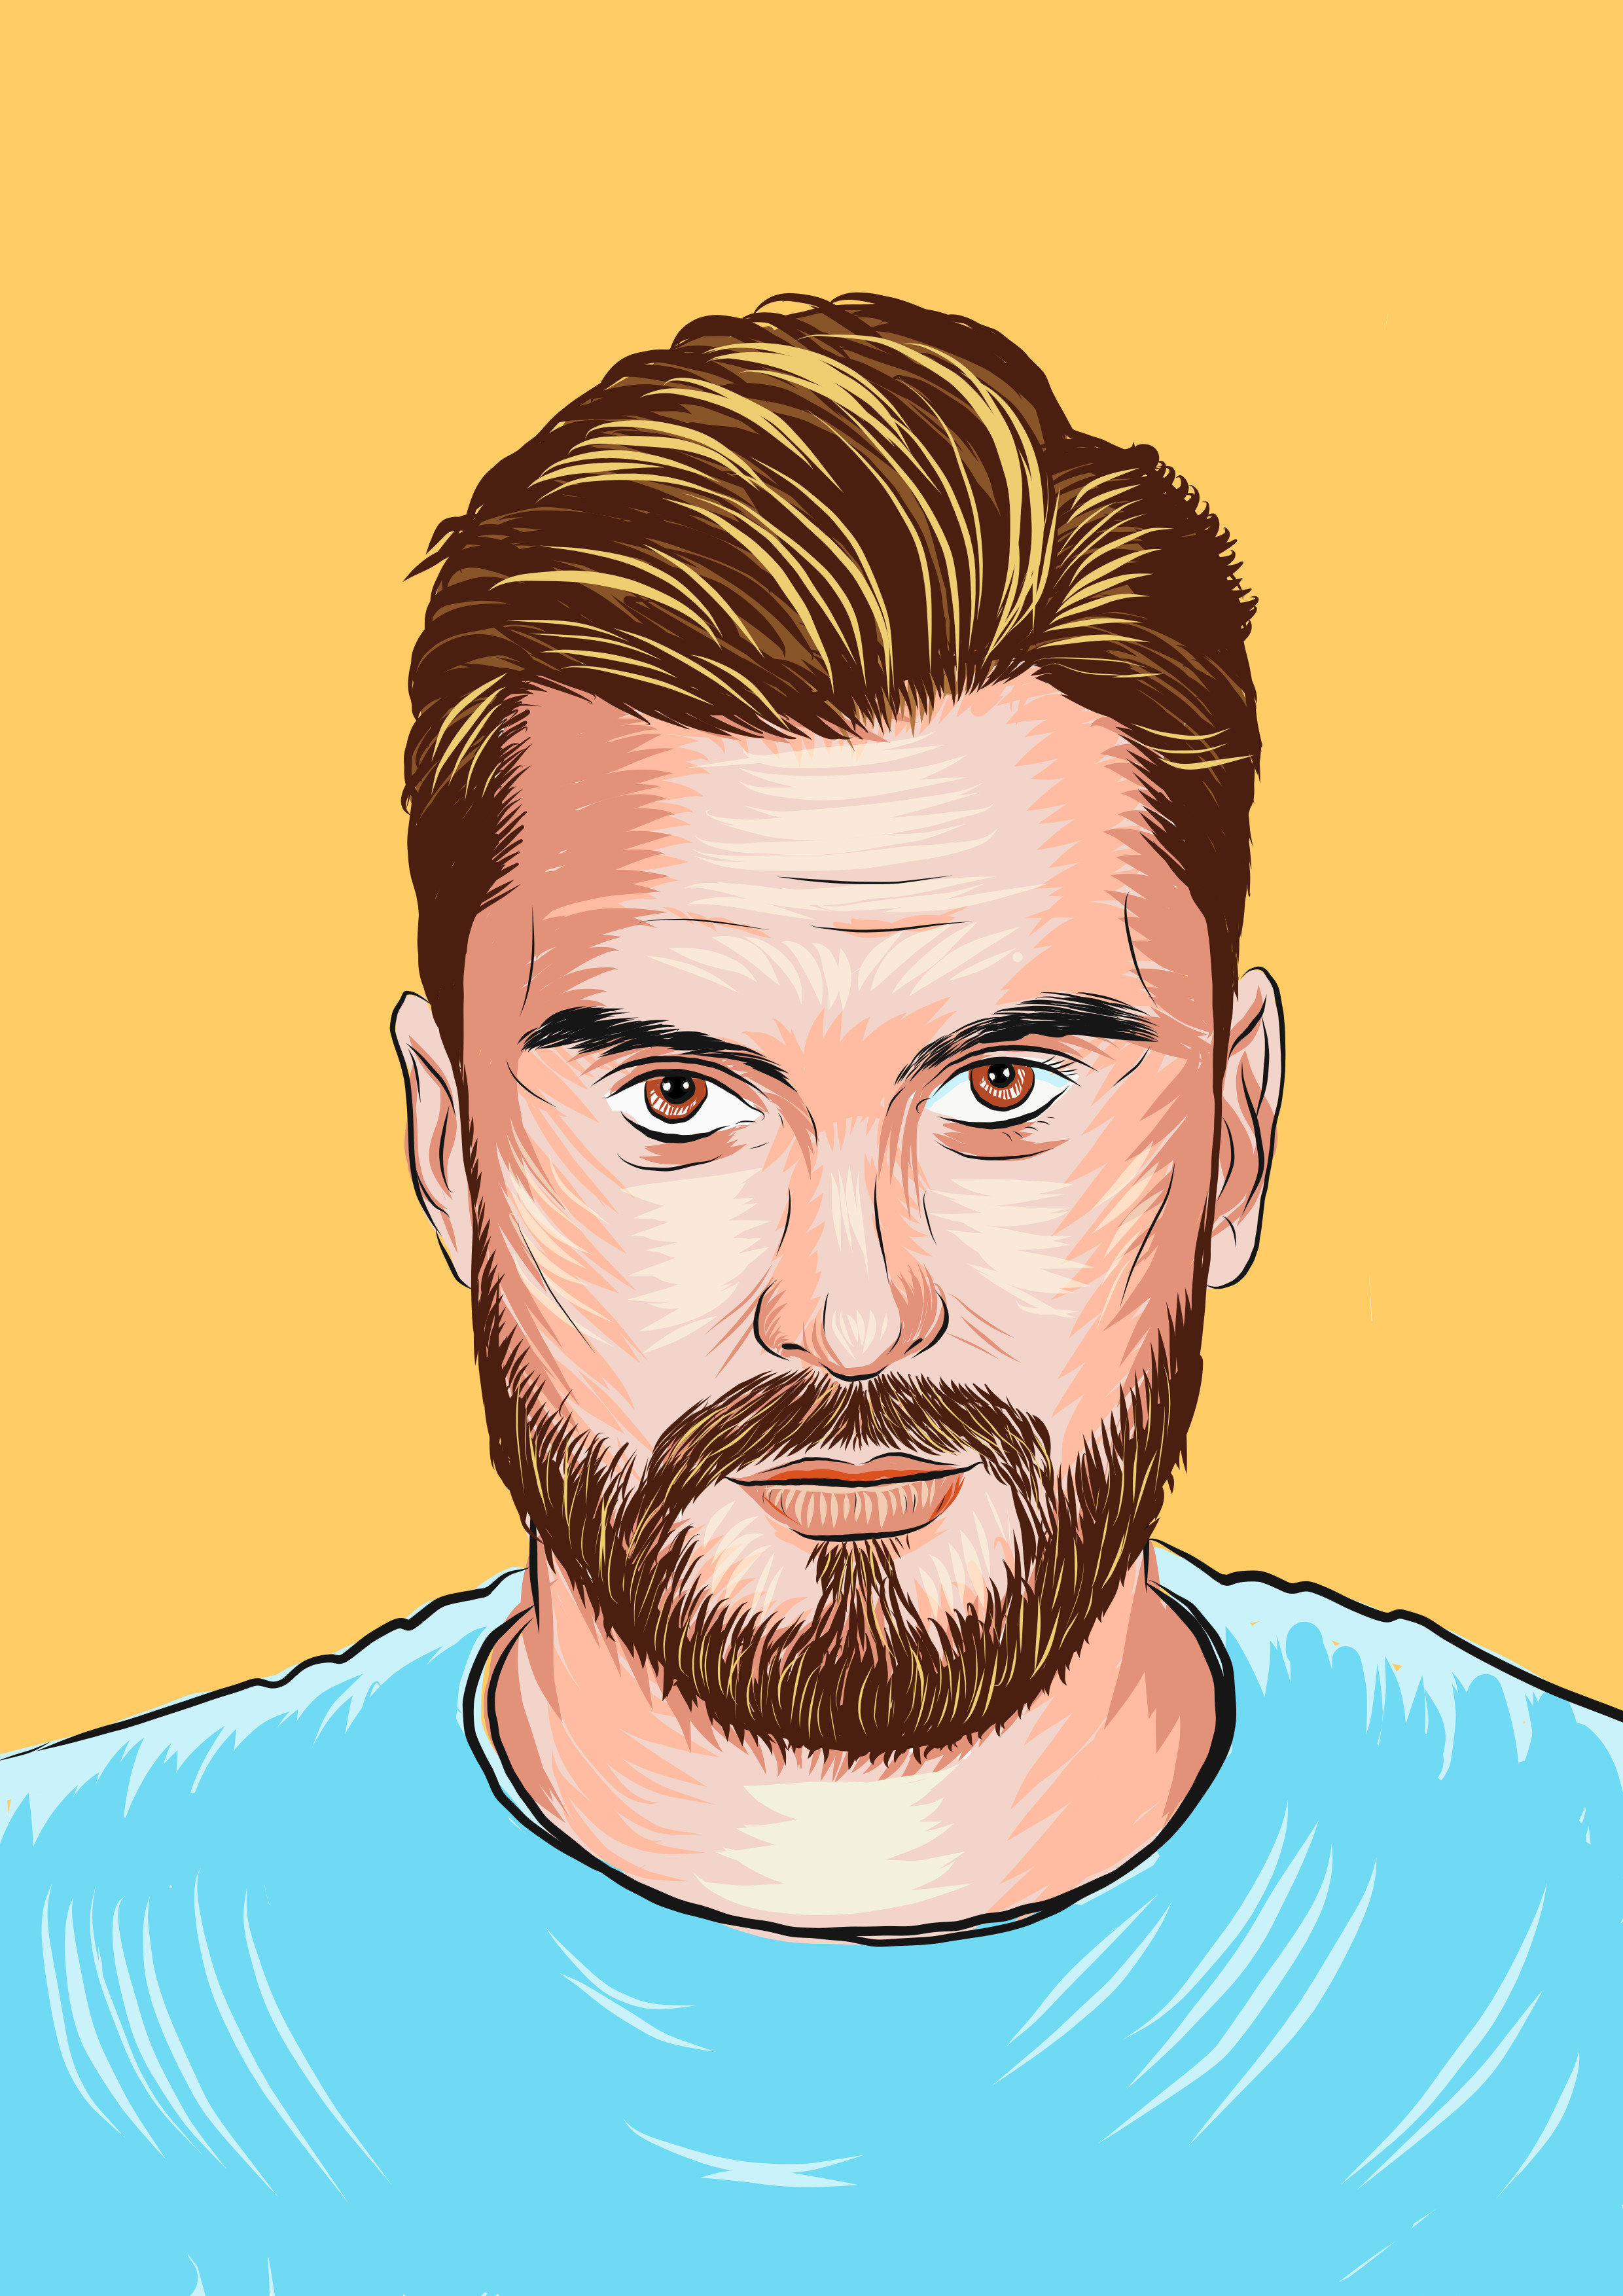 Create A Cool Cartoon Portrait In My Style By Hiraarshad